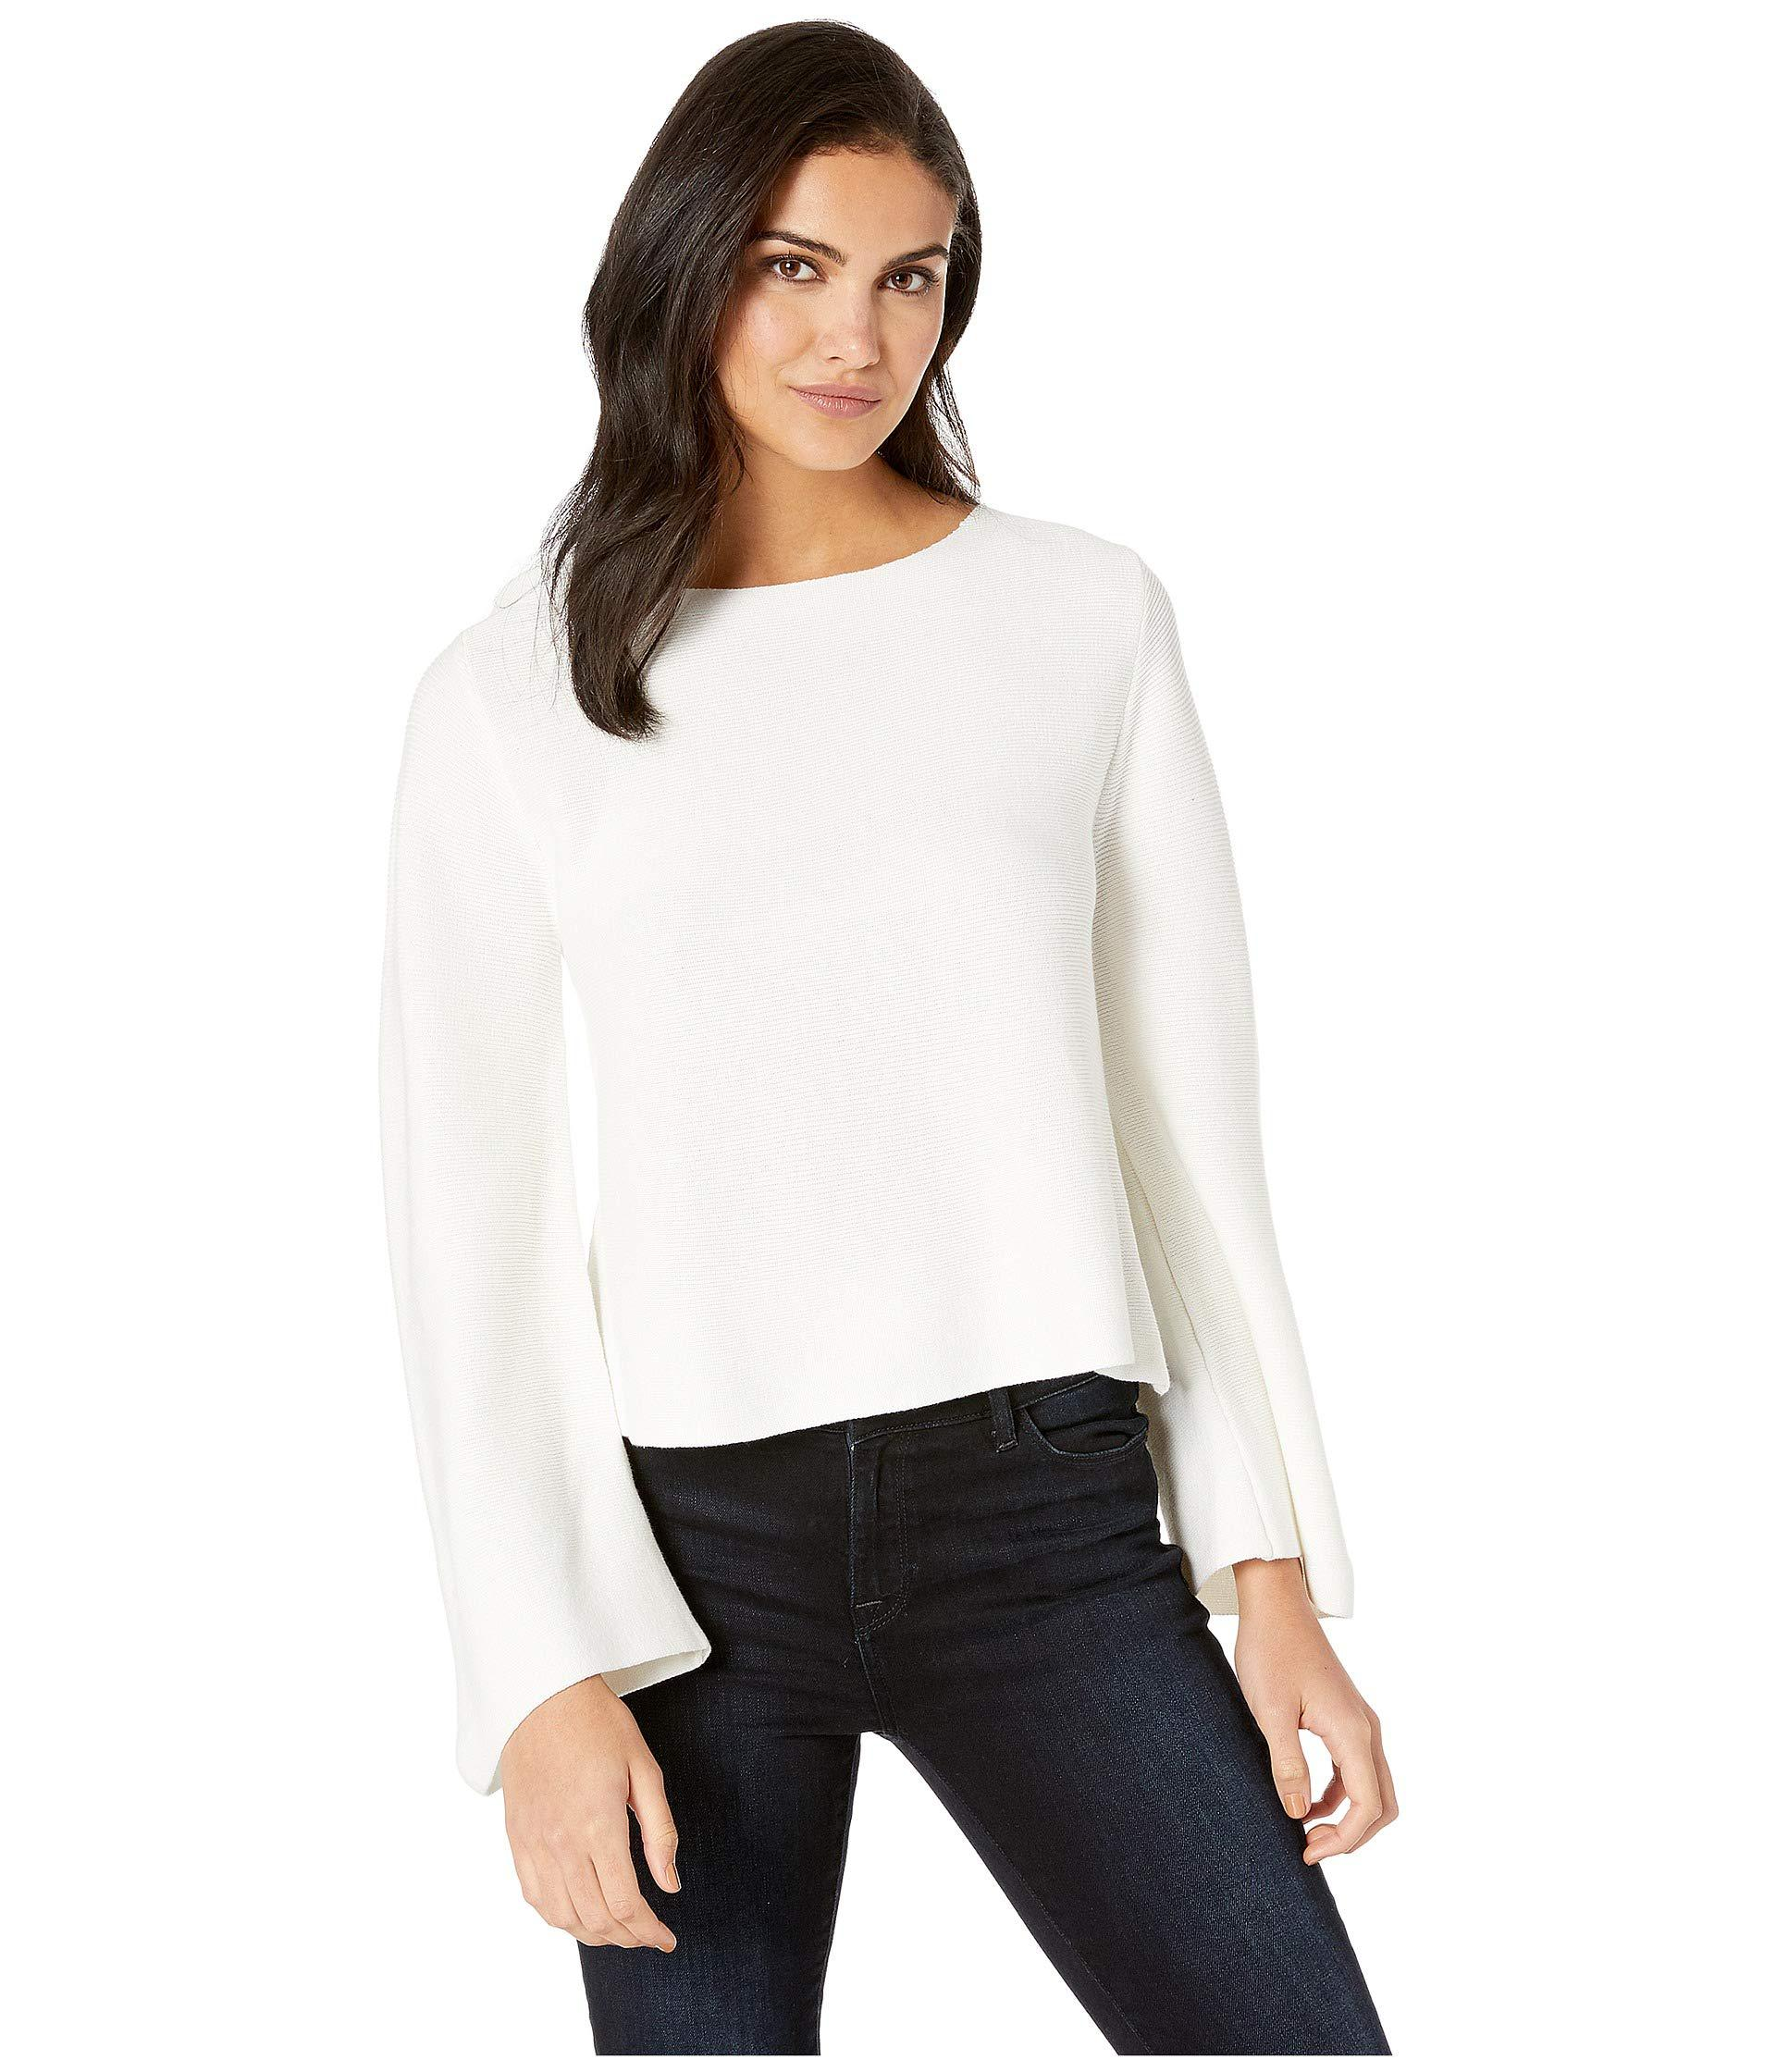 0bb7efb15cd1c Lyst - Bishop + Young Savvy Sweater (ivory) Women s Sweater in White